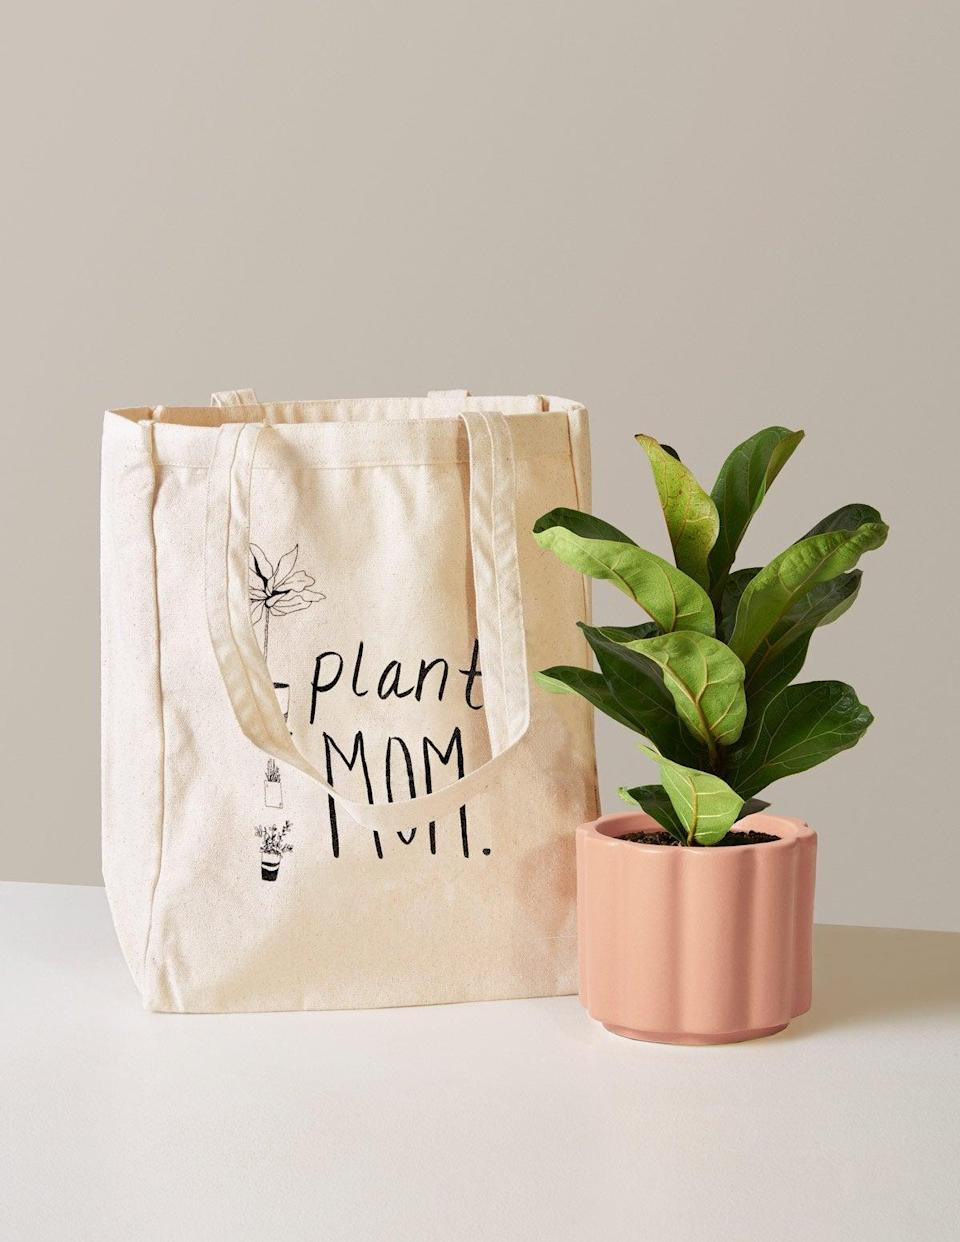 """<h3><h2>Fiddle Leaf Fig </h2></h3><br><strong>Why She'll Love It</strong><br>Pair this on-trend houseplant in a blush-pink ceramic pot with the <a href=""""https://www.thesill.com/products/plant-mom-tote-bag"""" rel=""""nofollow noopener"""" target=""""_blank"""" data-ylk=""""slk:""""Plant Mom"""" tote"""" class=""""link rapid-noclick-resp"""">""""Plant Mom"""" tote</a> for the ultimate green thumb gift set. <br><br><strong>Care</strong><br>Fiddle leaf figs love anything from bright indirect to full sunlight showers with a watering every one to two weeks and fully dried out soil in between. <br><br><em>Shop</em><strong><em> <a href=""""https://www.thesill.com/collections/mothers-day-plant-gifts-delivery"""" rel=""""nofollow noopener"""" target=""""_blank"""" data-ylk=""""slk:The Sill"""" class=""""link rapid-noclick-resp"""">The Sill</a></em></strong><br><br><strong>The Sill</strong> Plant Mom Tote Bag, $, available at <a href=""""https://go.skimresources.com/?id=30283X879131&url=https%3A%2F%2Fwww.thesill.com%2Fproducts%2Fplant-mom-tote-bag"""" rel=""""nofollow noopener"""" target=""""_blank"""" data-ylk=""""slk:The Sill"""" class=""""link rapid-noclick-resp"""">The Sill</a><br><br><strong>The Sill</strong> Fiddle Leaf Fig, $, available at <a href=""""https://go.skimresources.com/?id=30283X879131&url=https%3A%2F%2Fwww.thesill.com%2Fproducts%2Ffiddle-leaf-fig%3Fvariant%3D39335821312105"""" rel=""""nofollow noopener"""" target=""""_blank"""" data-ylk=""""slk:The Sill"""" class=""""link rapid-noclick-resp"""">The Sill</a>"""